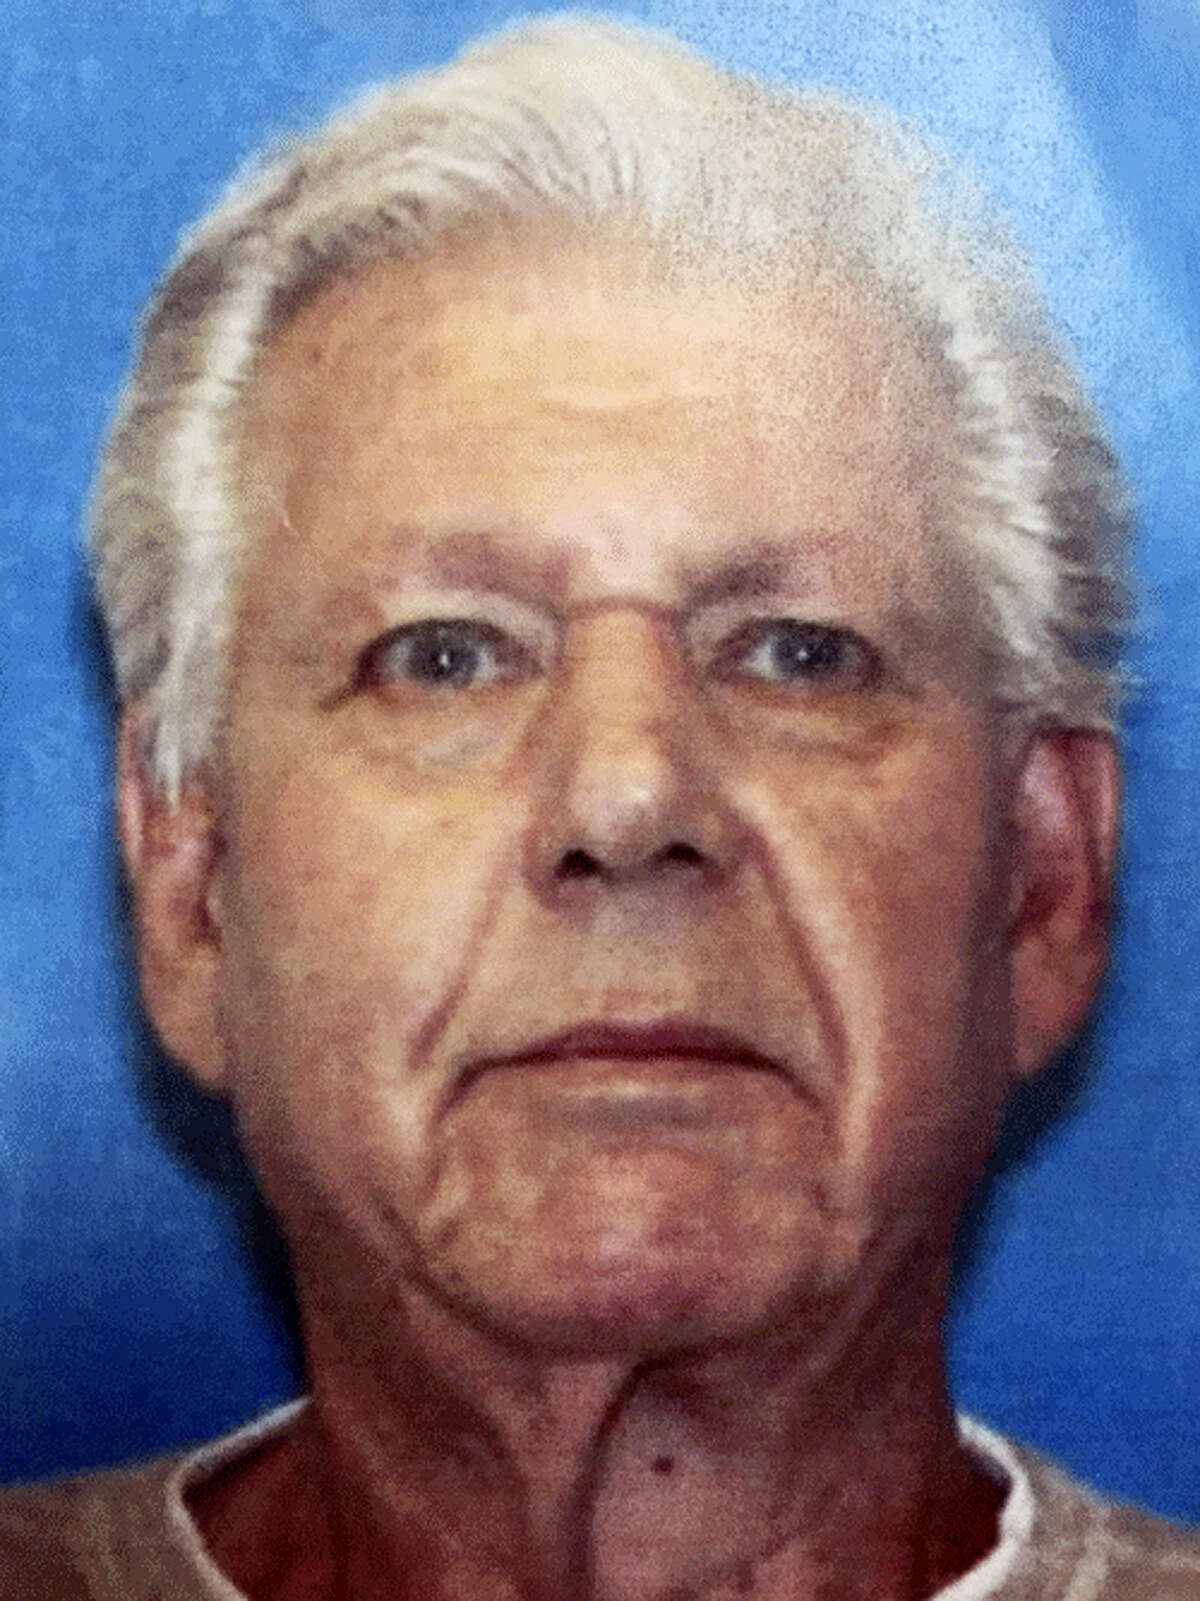 This undated photo released by the Georgia Department of Corrections shows Robert Stackowitz, 71, arrested Monday, May 9, 2016.